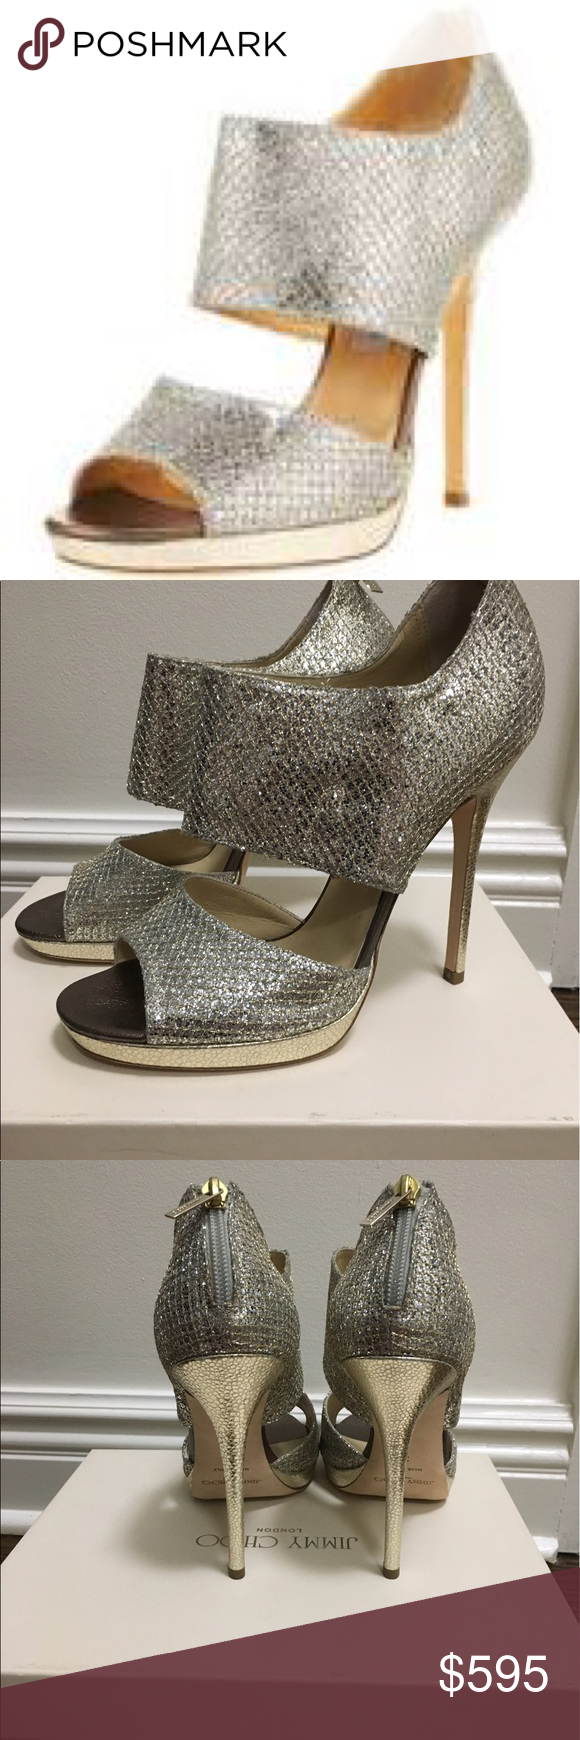 c8602ae29100 Jimmy Choo Private Champagne Glitter Sandals Brand New Size 39 Jimmy Choo  Glitter Sandals. Color is Champagne. They were never worn and purchased at  Saks ...